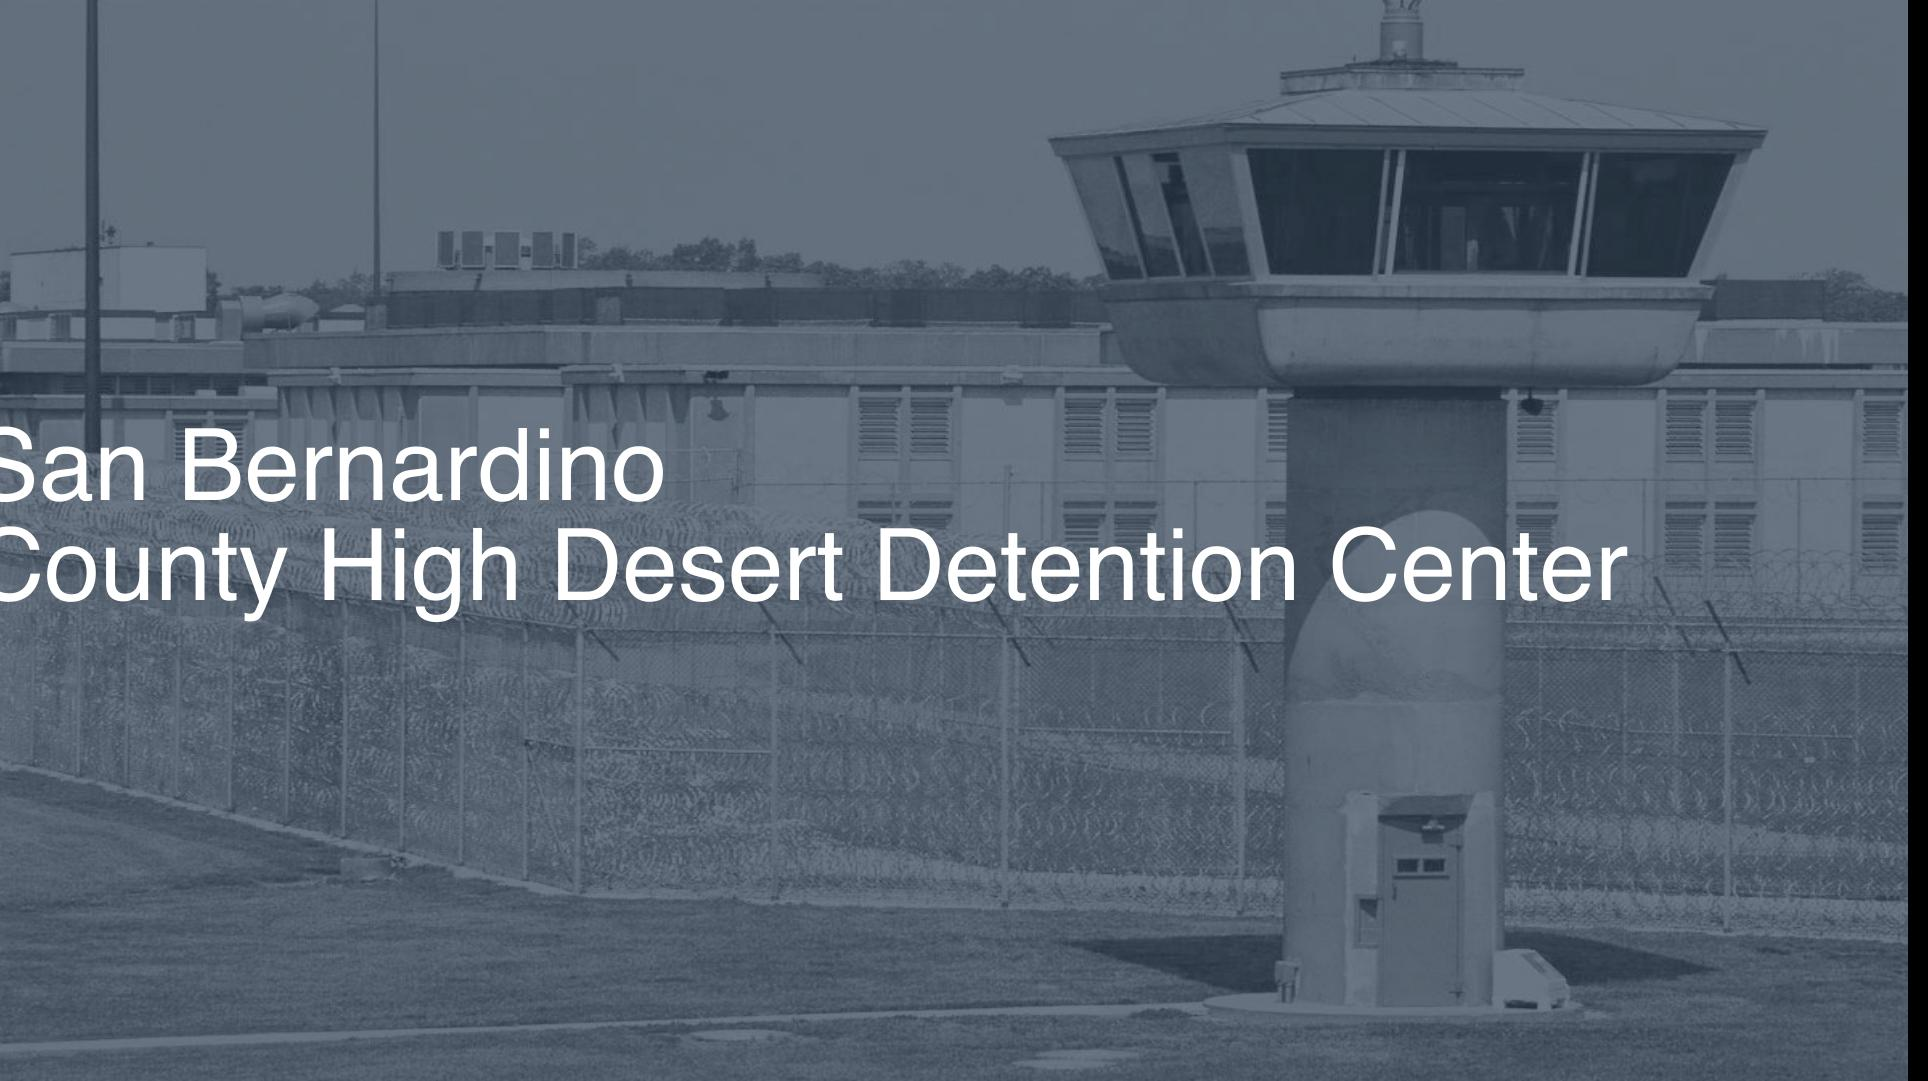 San Bernardino County - High Desert Detention Center correctional facility picture